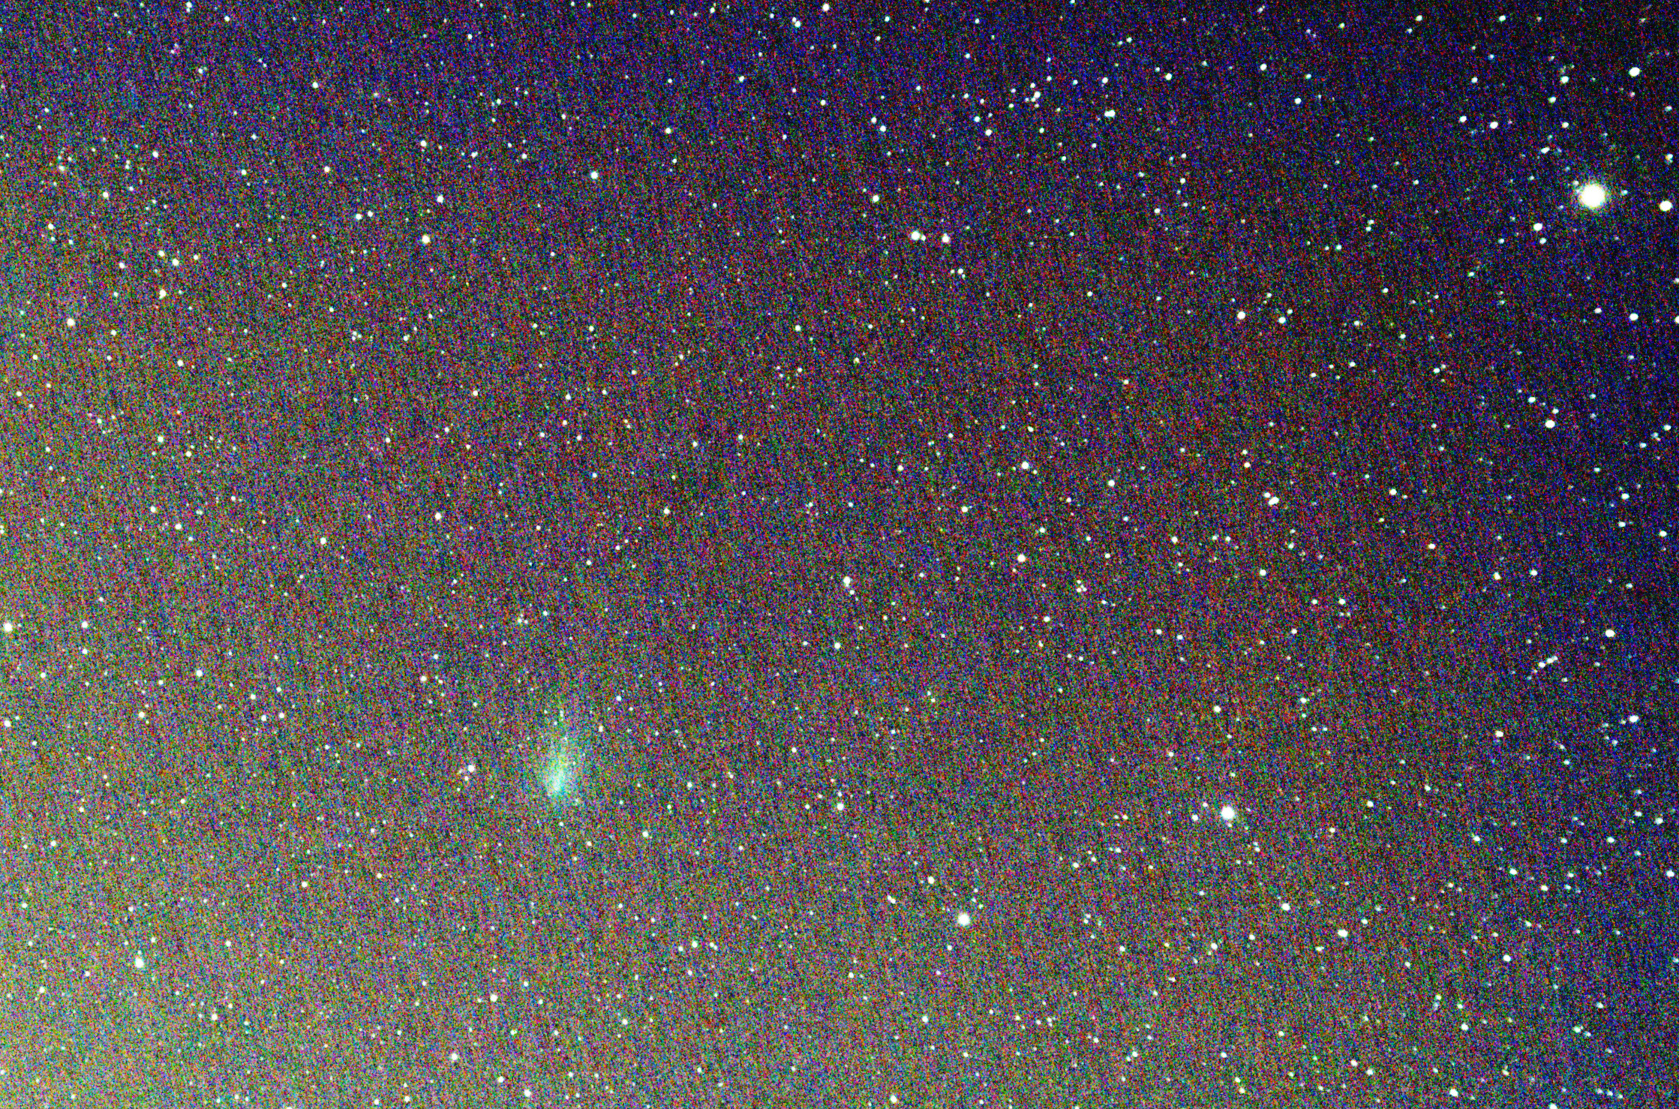 Comet C/2019 Y4 (ATLAS) on April 18, 2020 - Very faint at about magnitude 10. Imaged with 80ED telescope 25 x 15sec